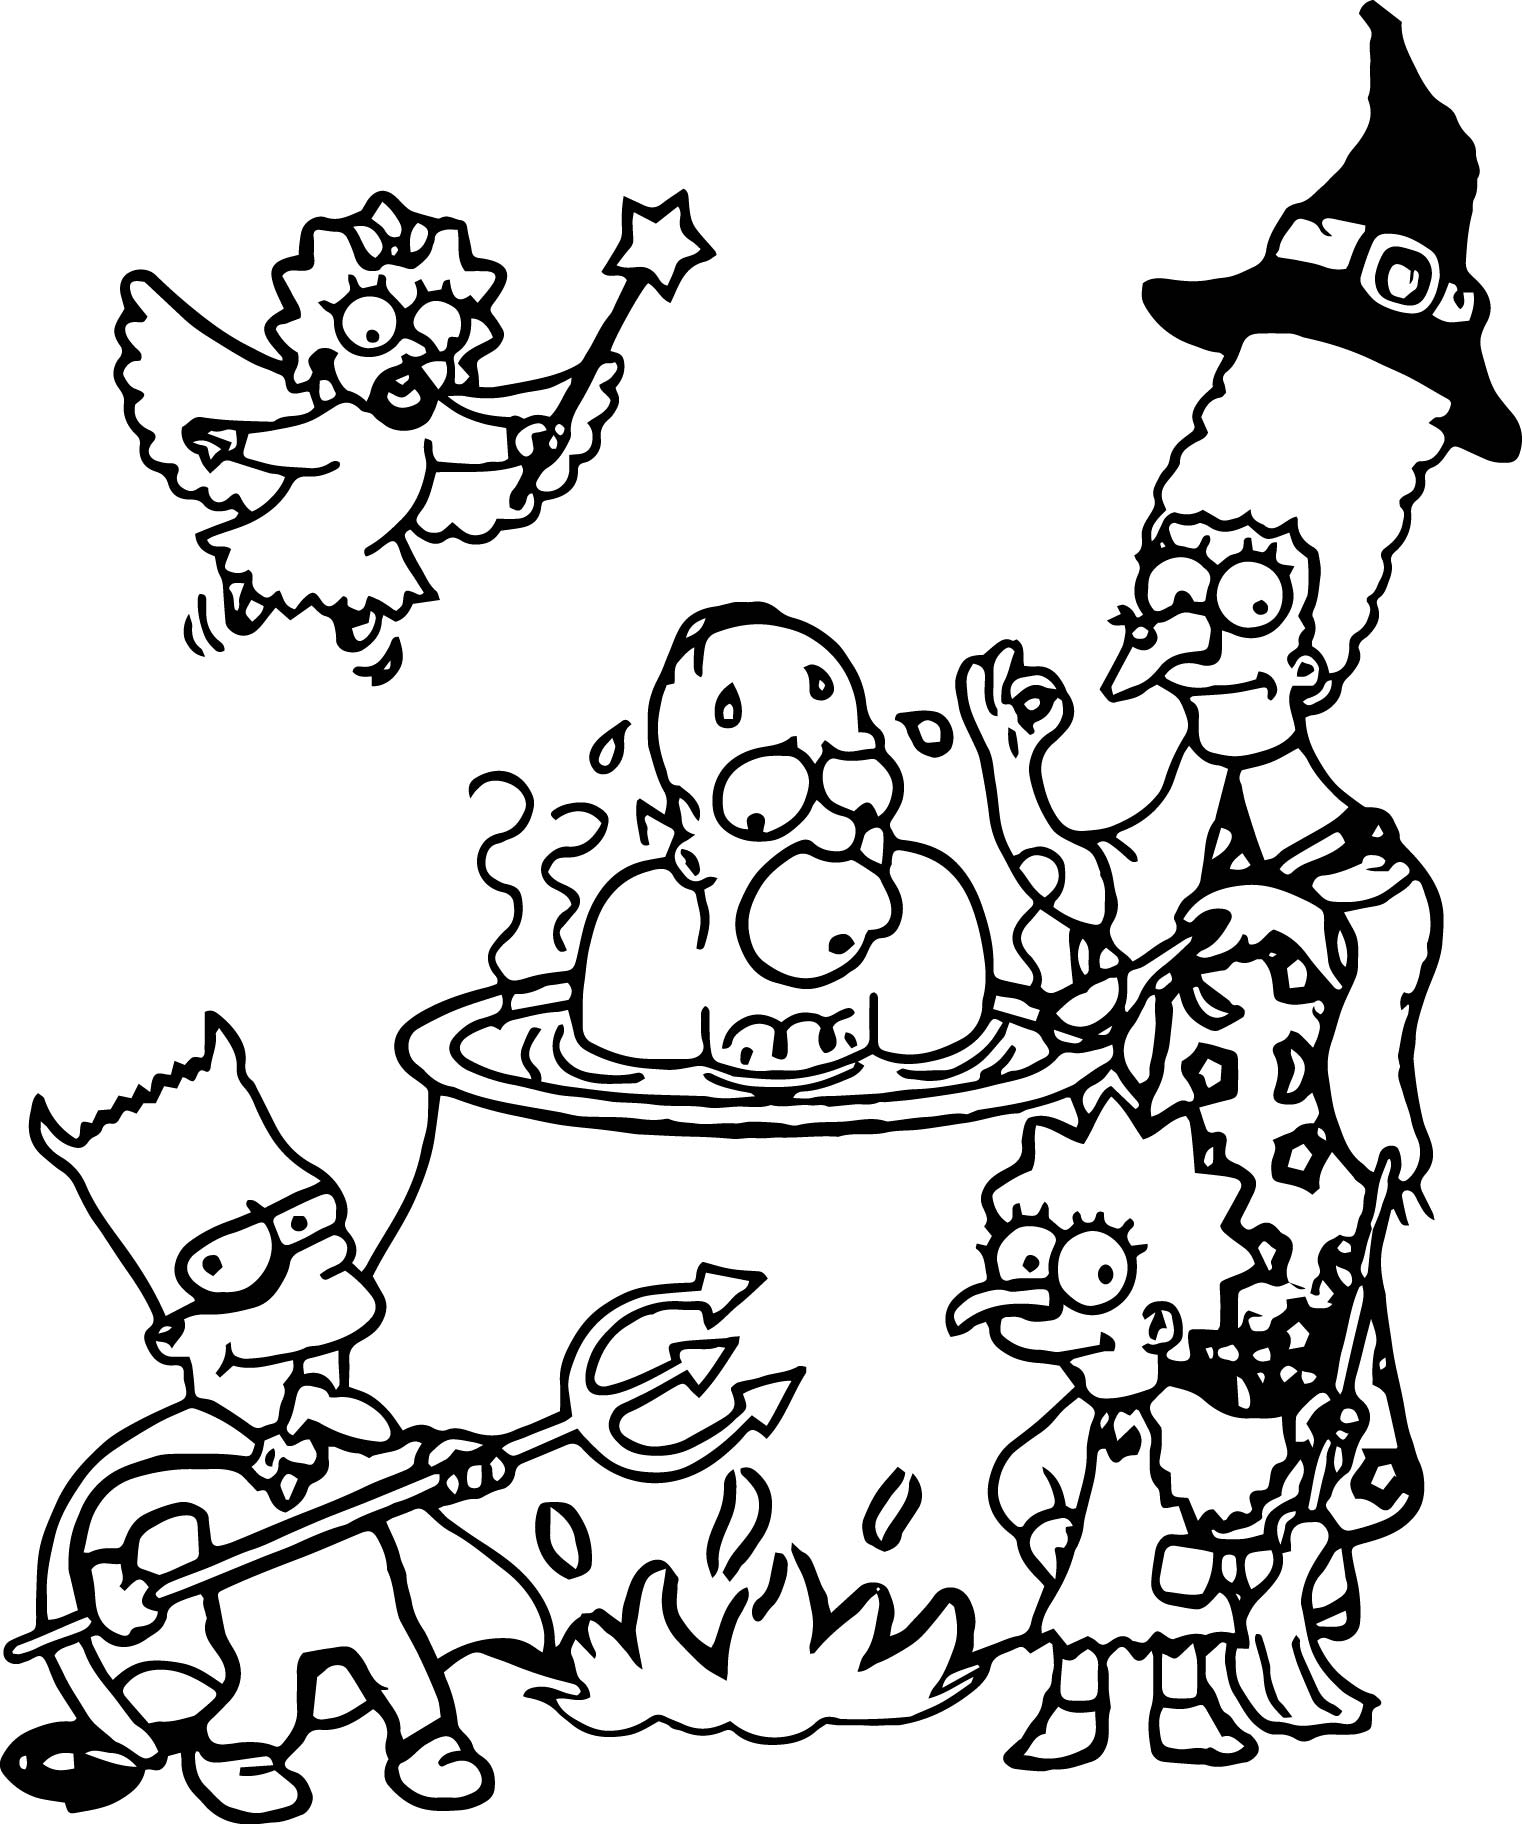 Homer simpson halloween coloring pages